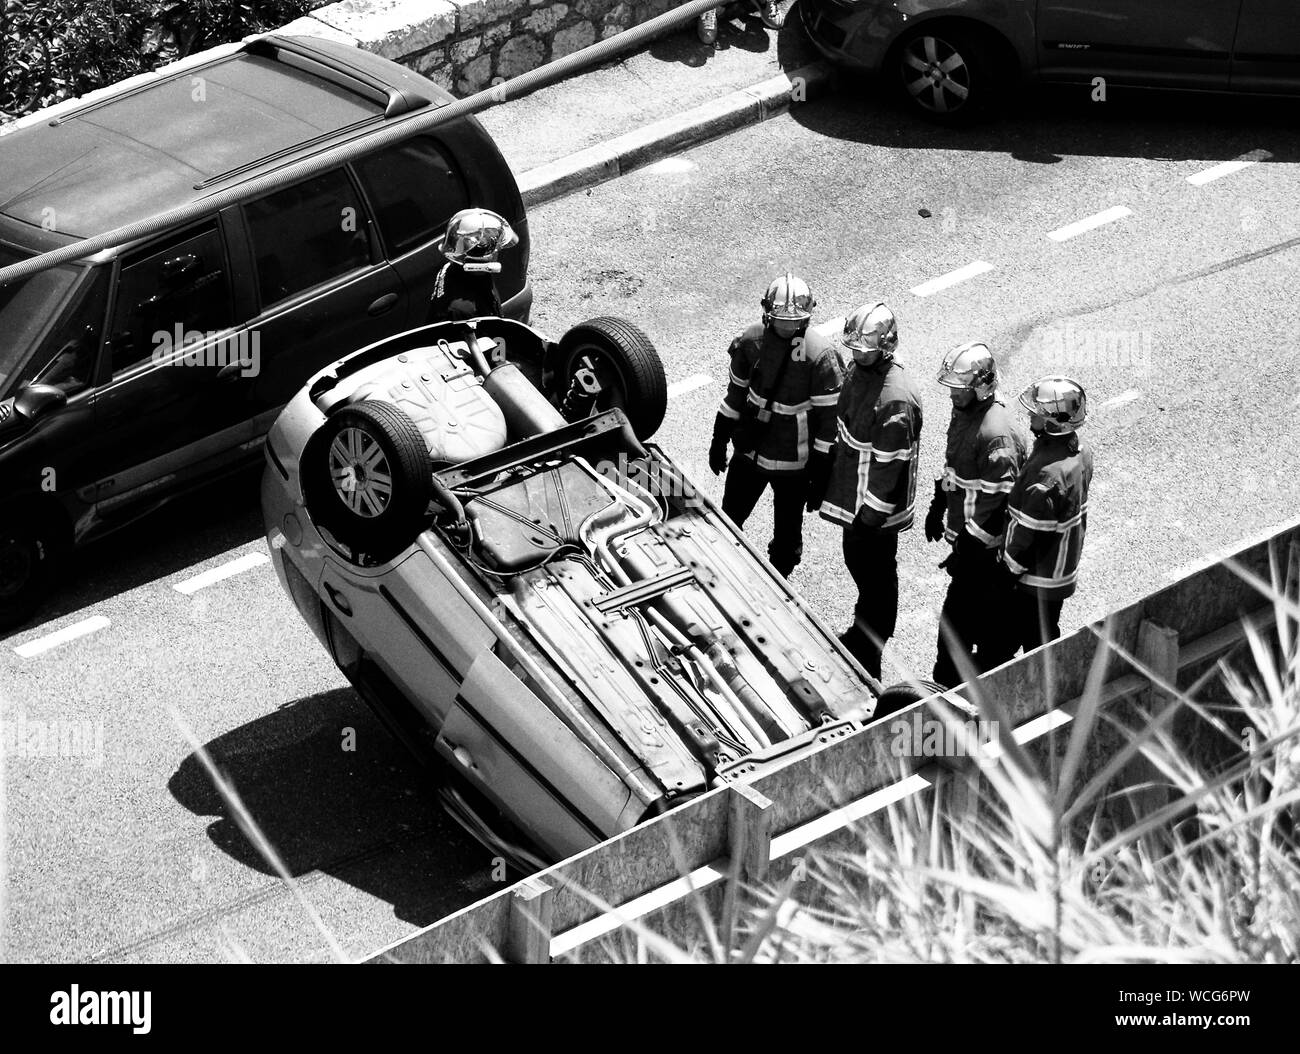 High Angle View Of Rescue Workers Standing Near Overturned Car Stock Photo